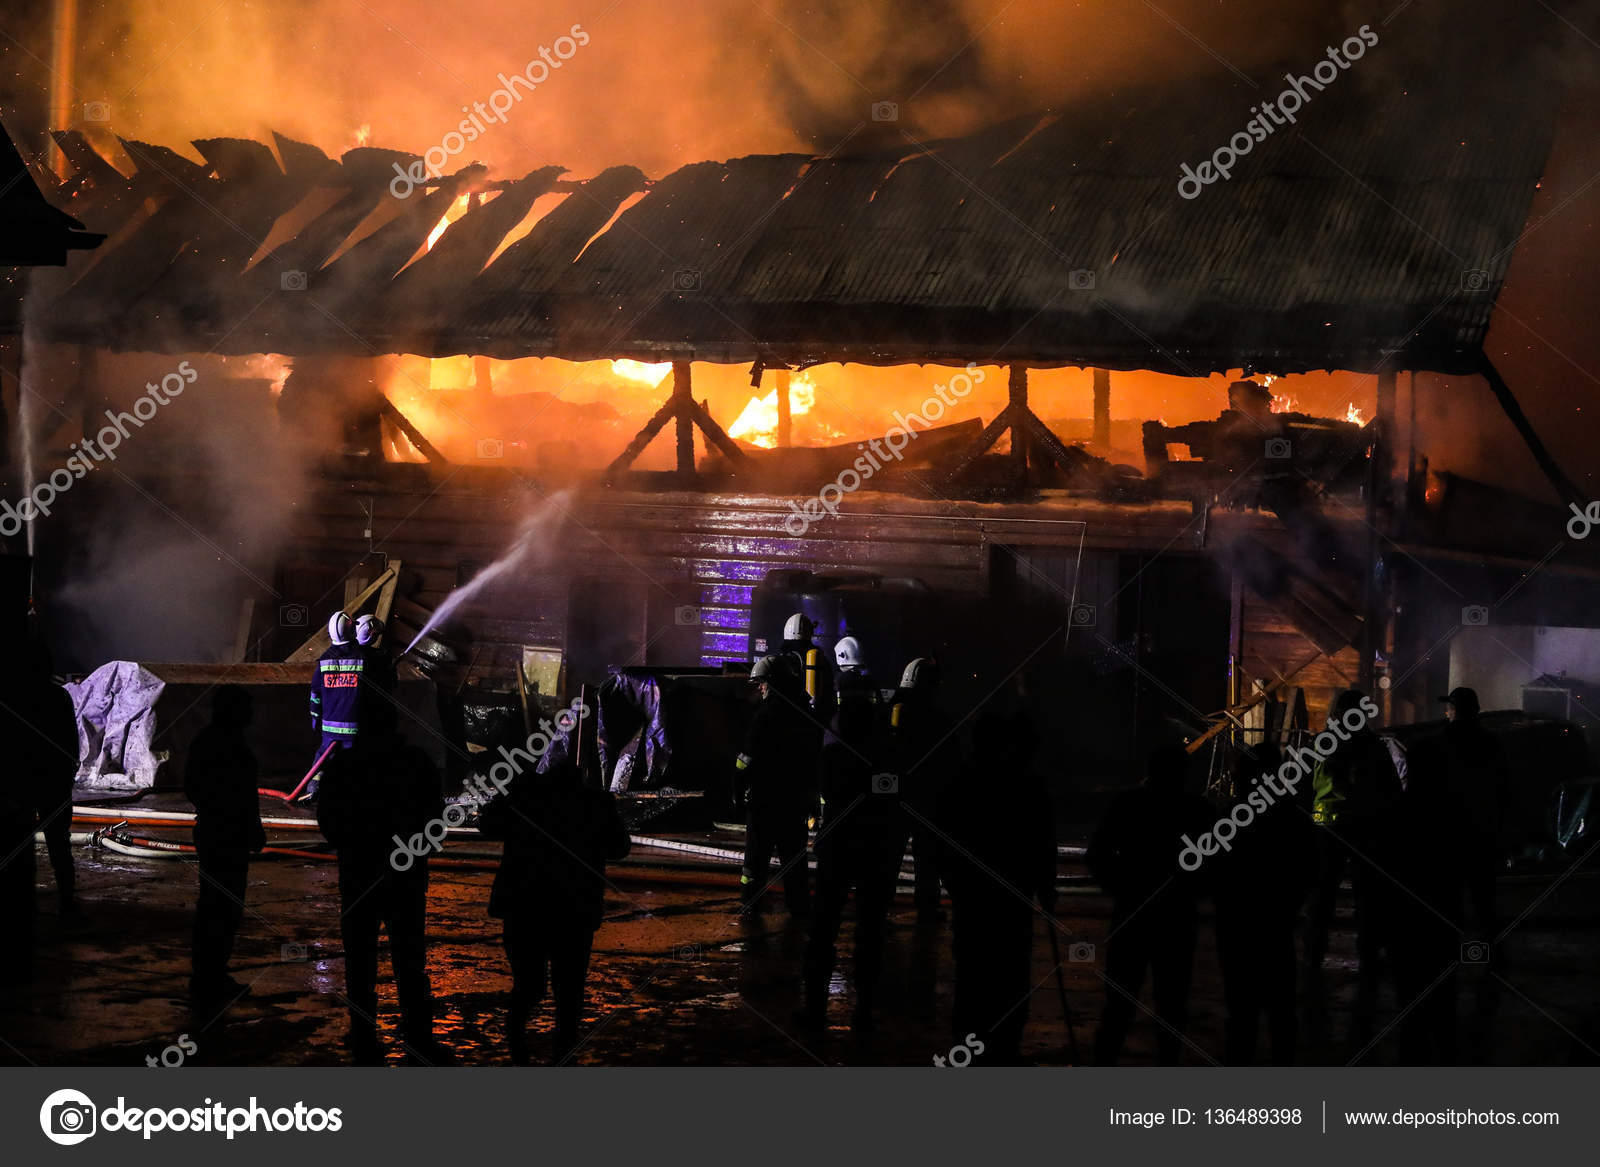 Carpentry house in fire – Stock Editorial Photo © adameq2